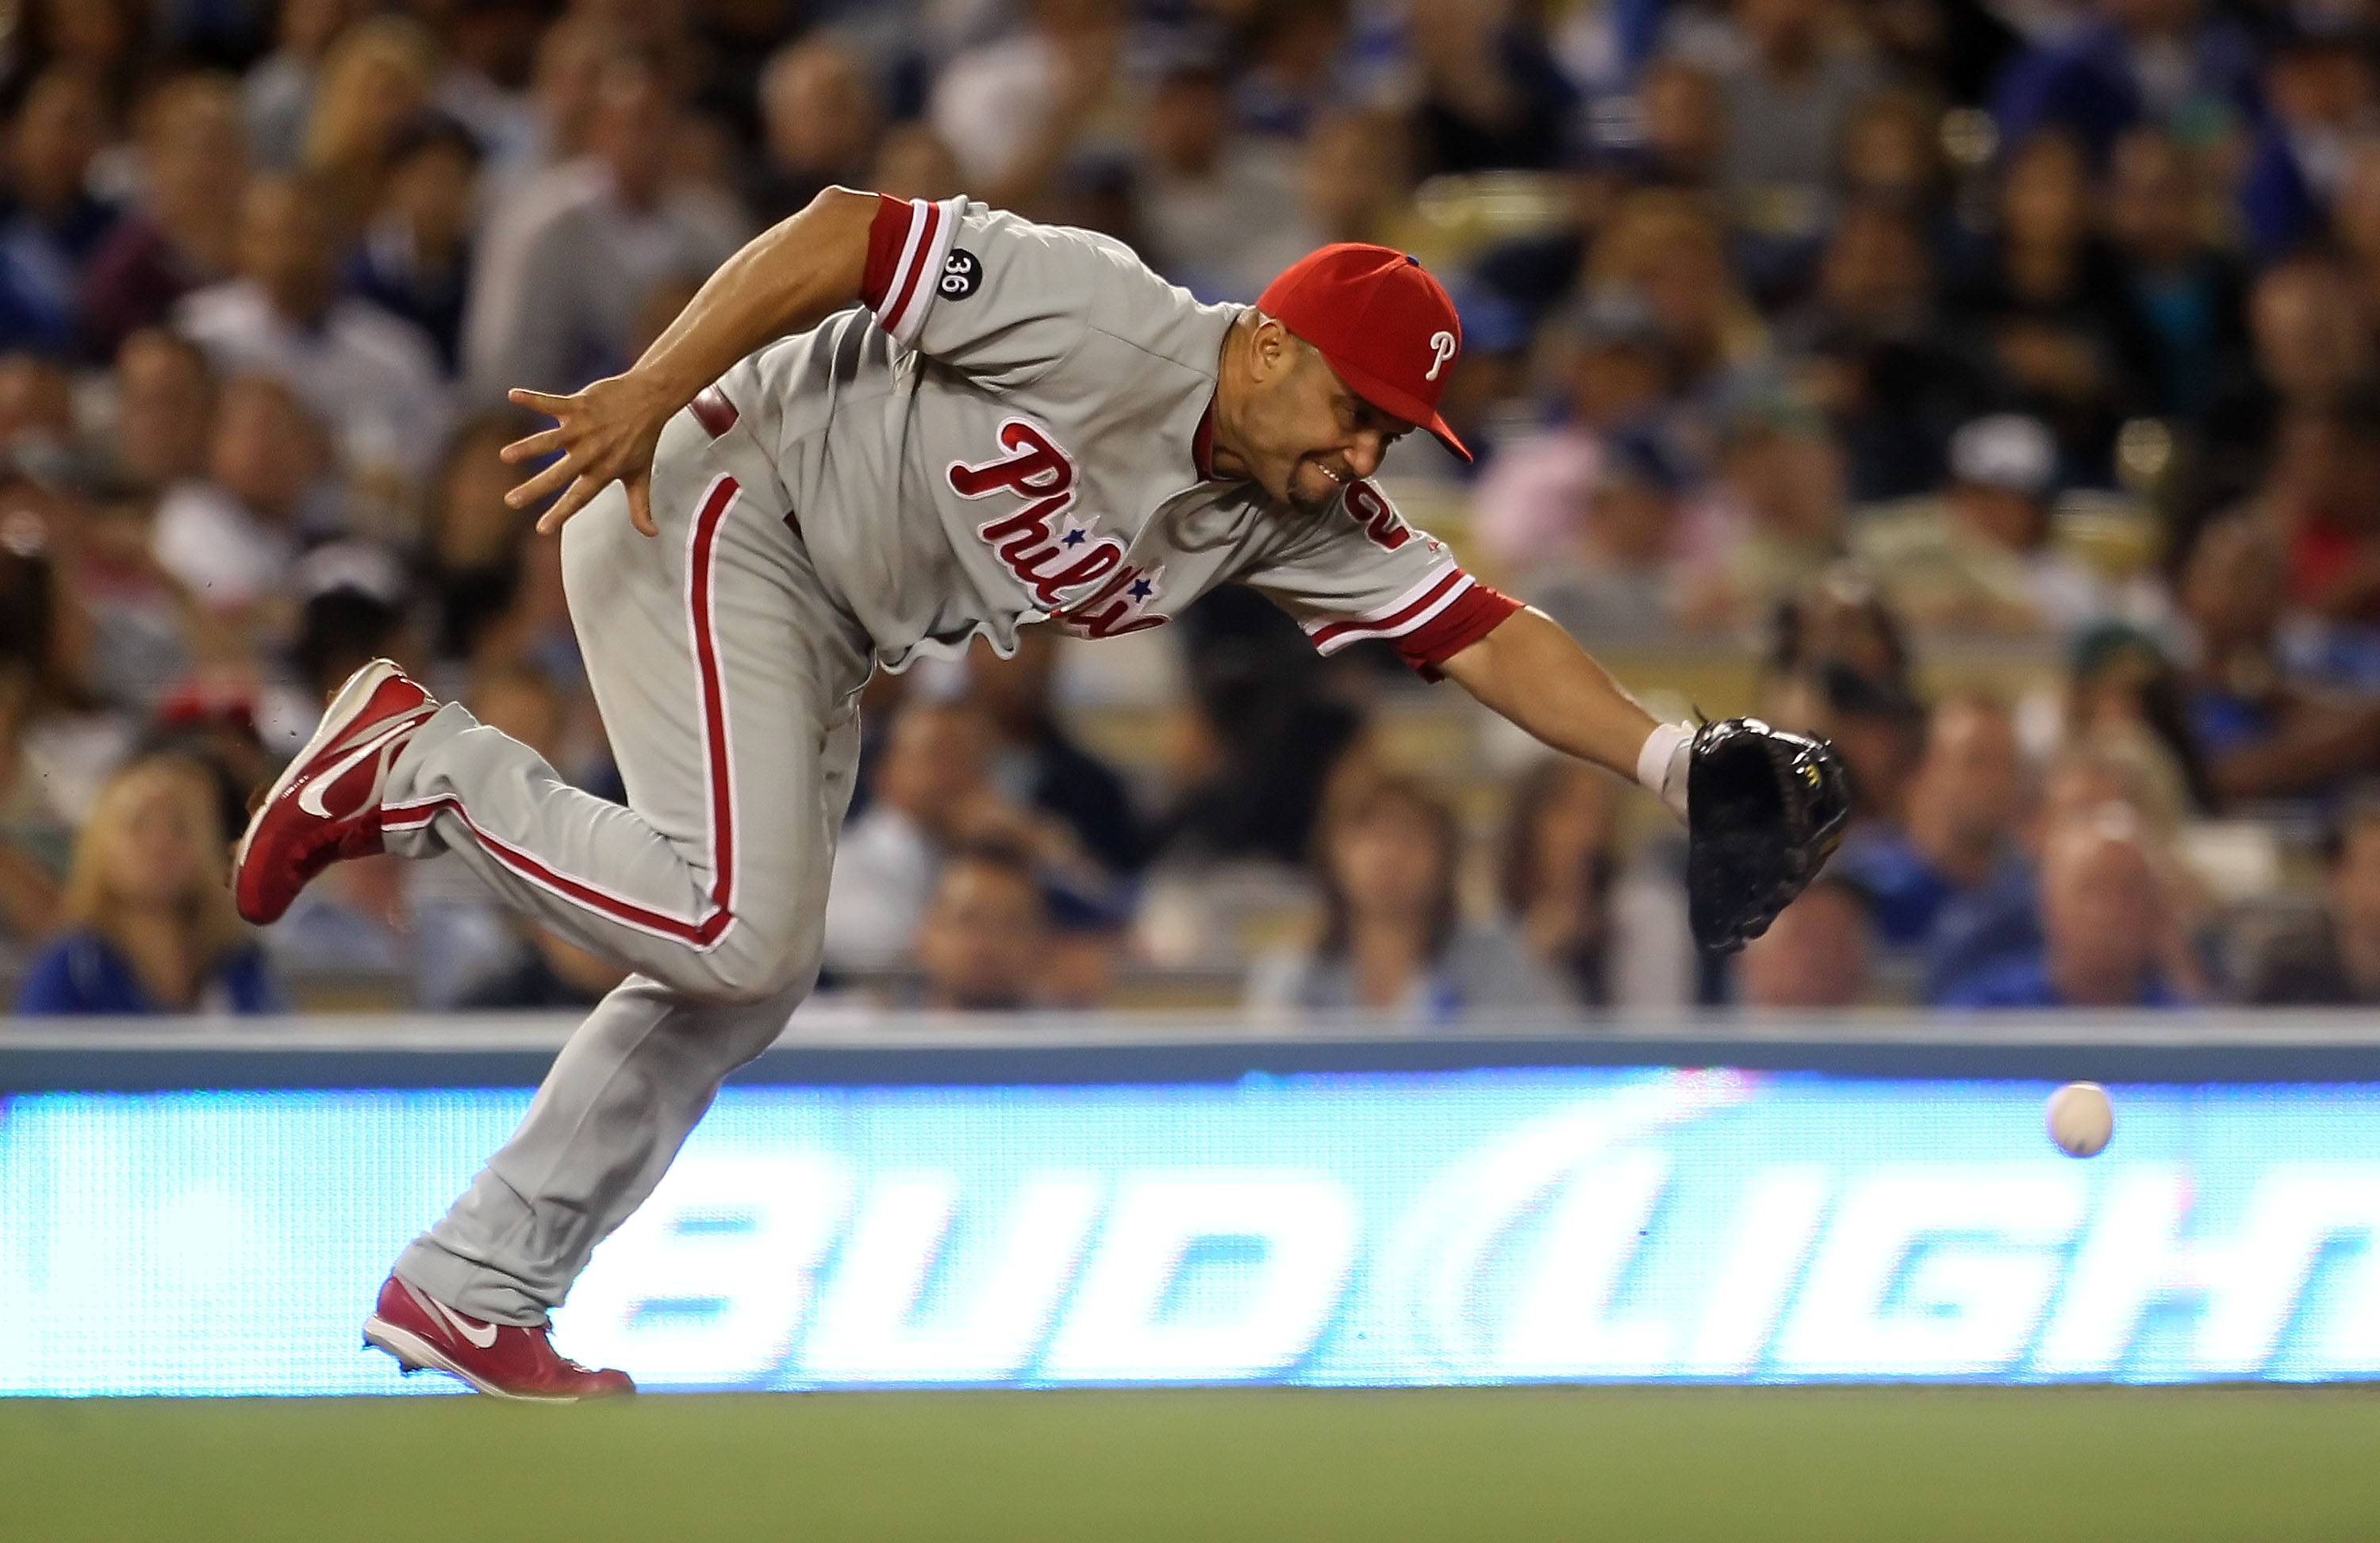 LOS ANGELES, CA - AUGUST 31:  Third baseman Placido Polanco #27 of the Philadelphia Phillies lunges for a ball hit by Rod Barajas of the Los Angeles Dodgers in the fifth inning at Dodger Stadium on August 31, 2010 in Los Angeles, California. The Phillies